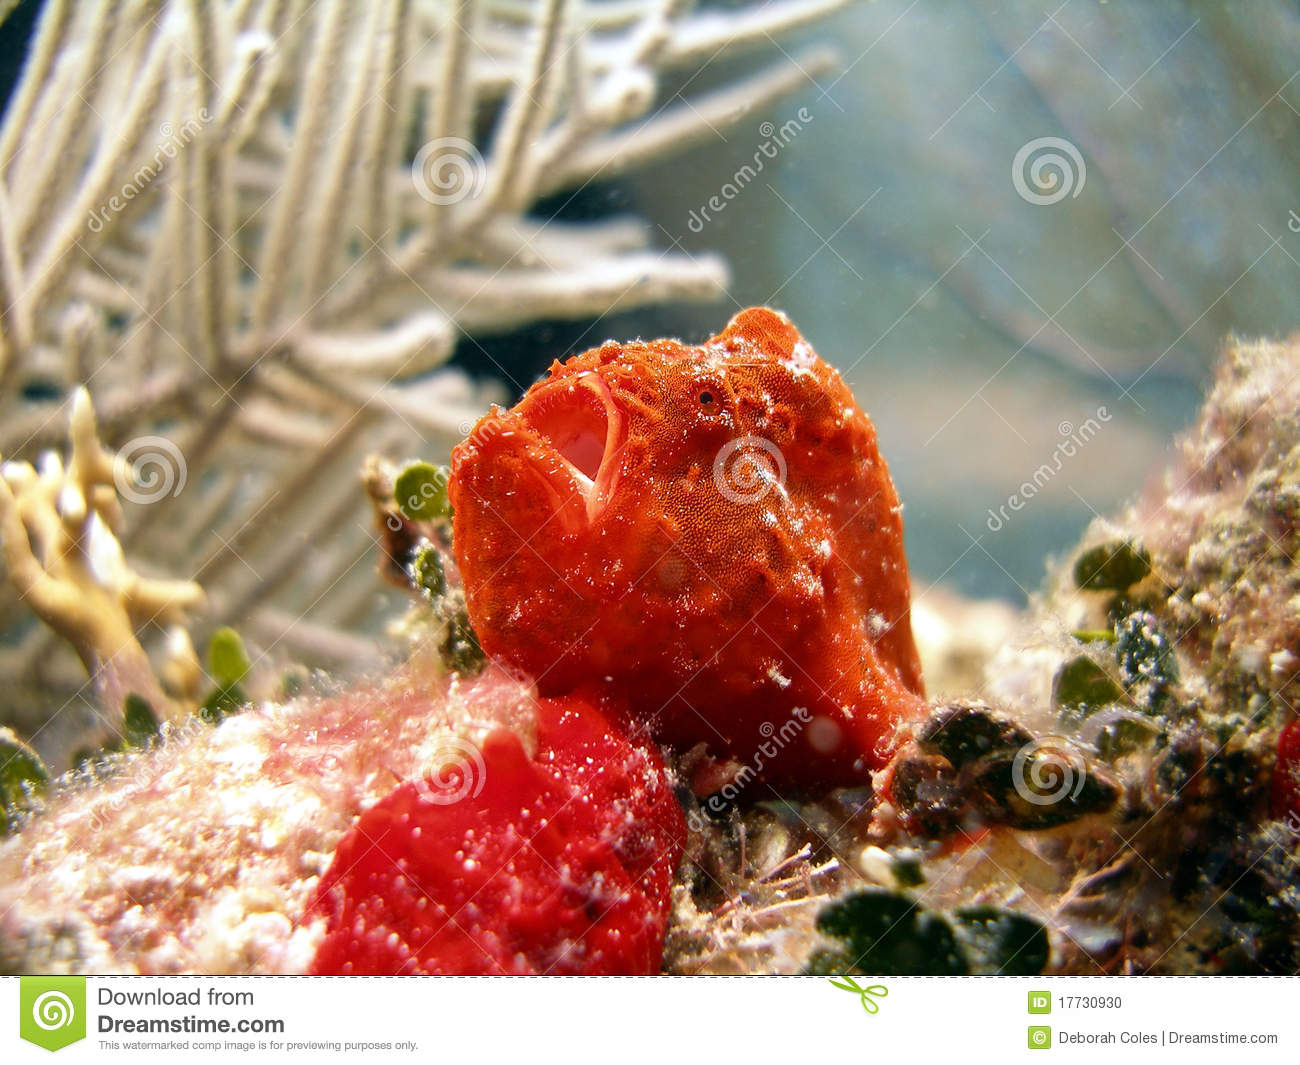 Frog Fish or Angler Fish stock photo. Image of life, beautiful ...